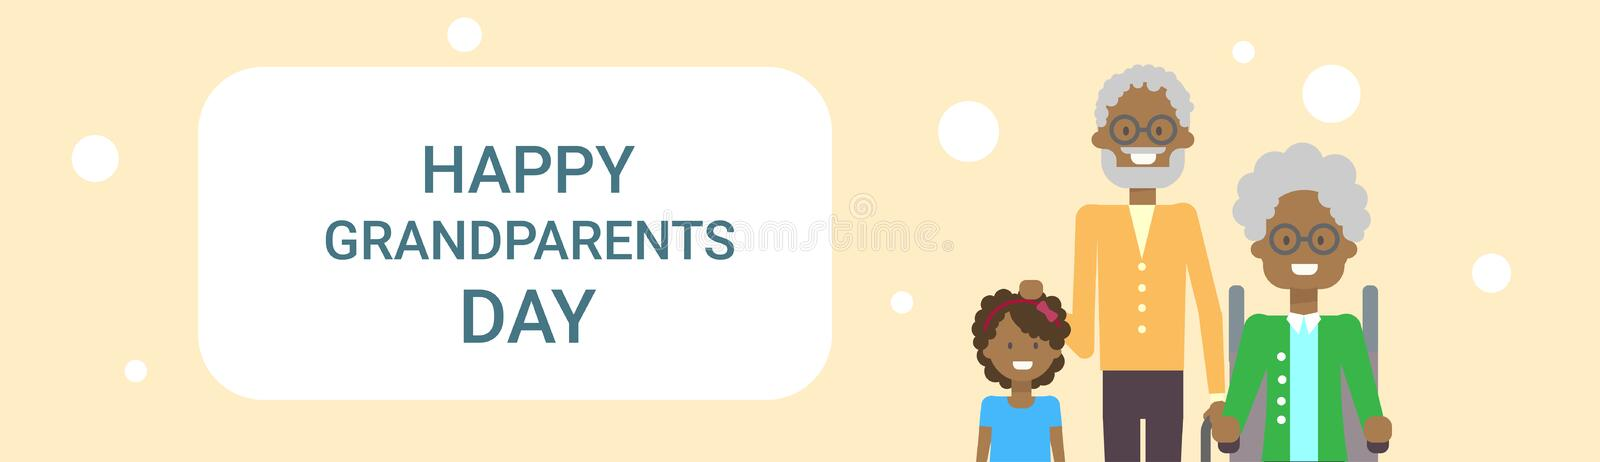 Happy Grandparents Day Greeting Card Banner African American Grandfather And Grandmother With Grandchild Together. Vector Illustration vector illustration